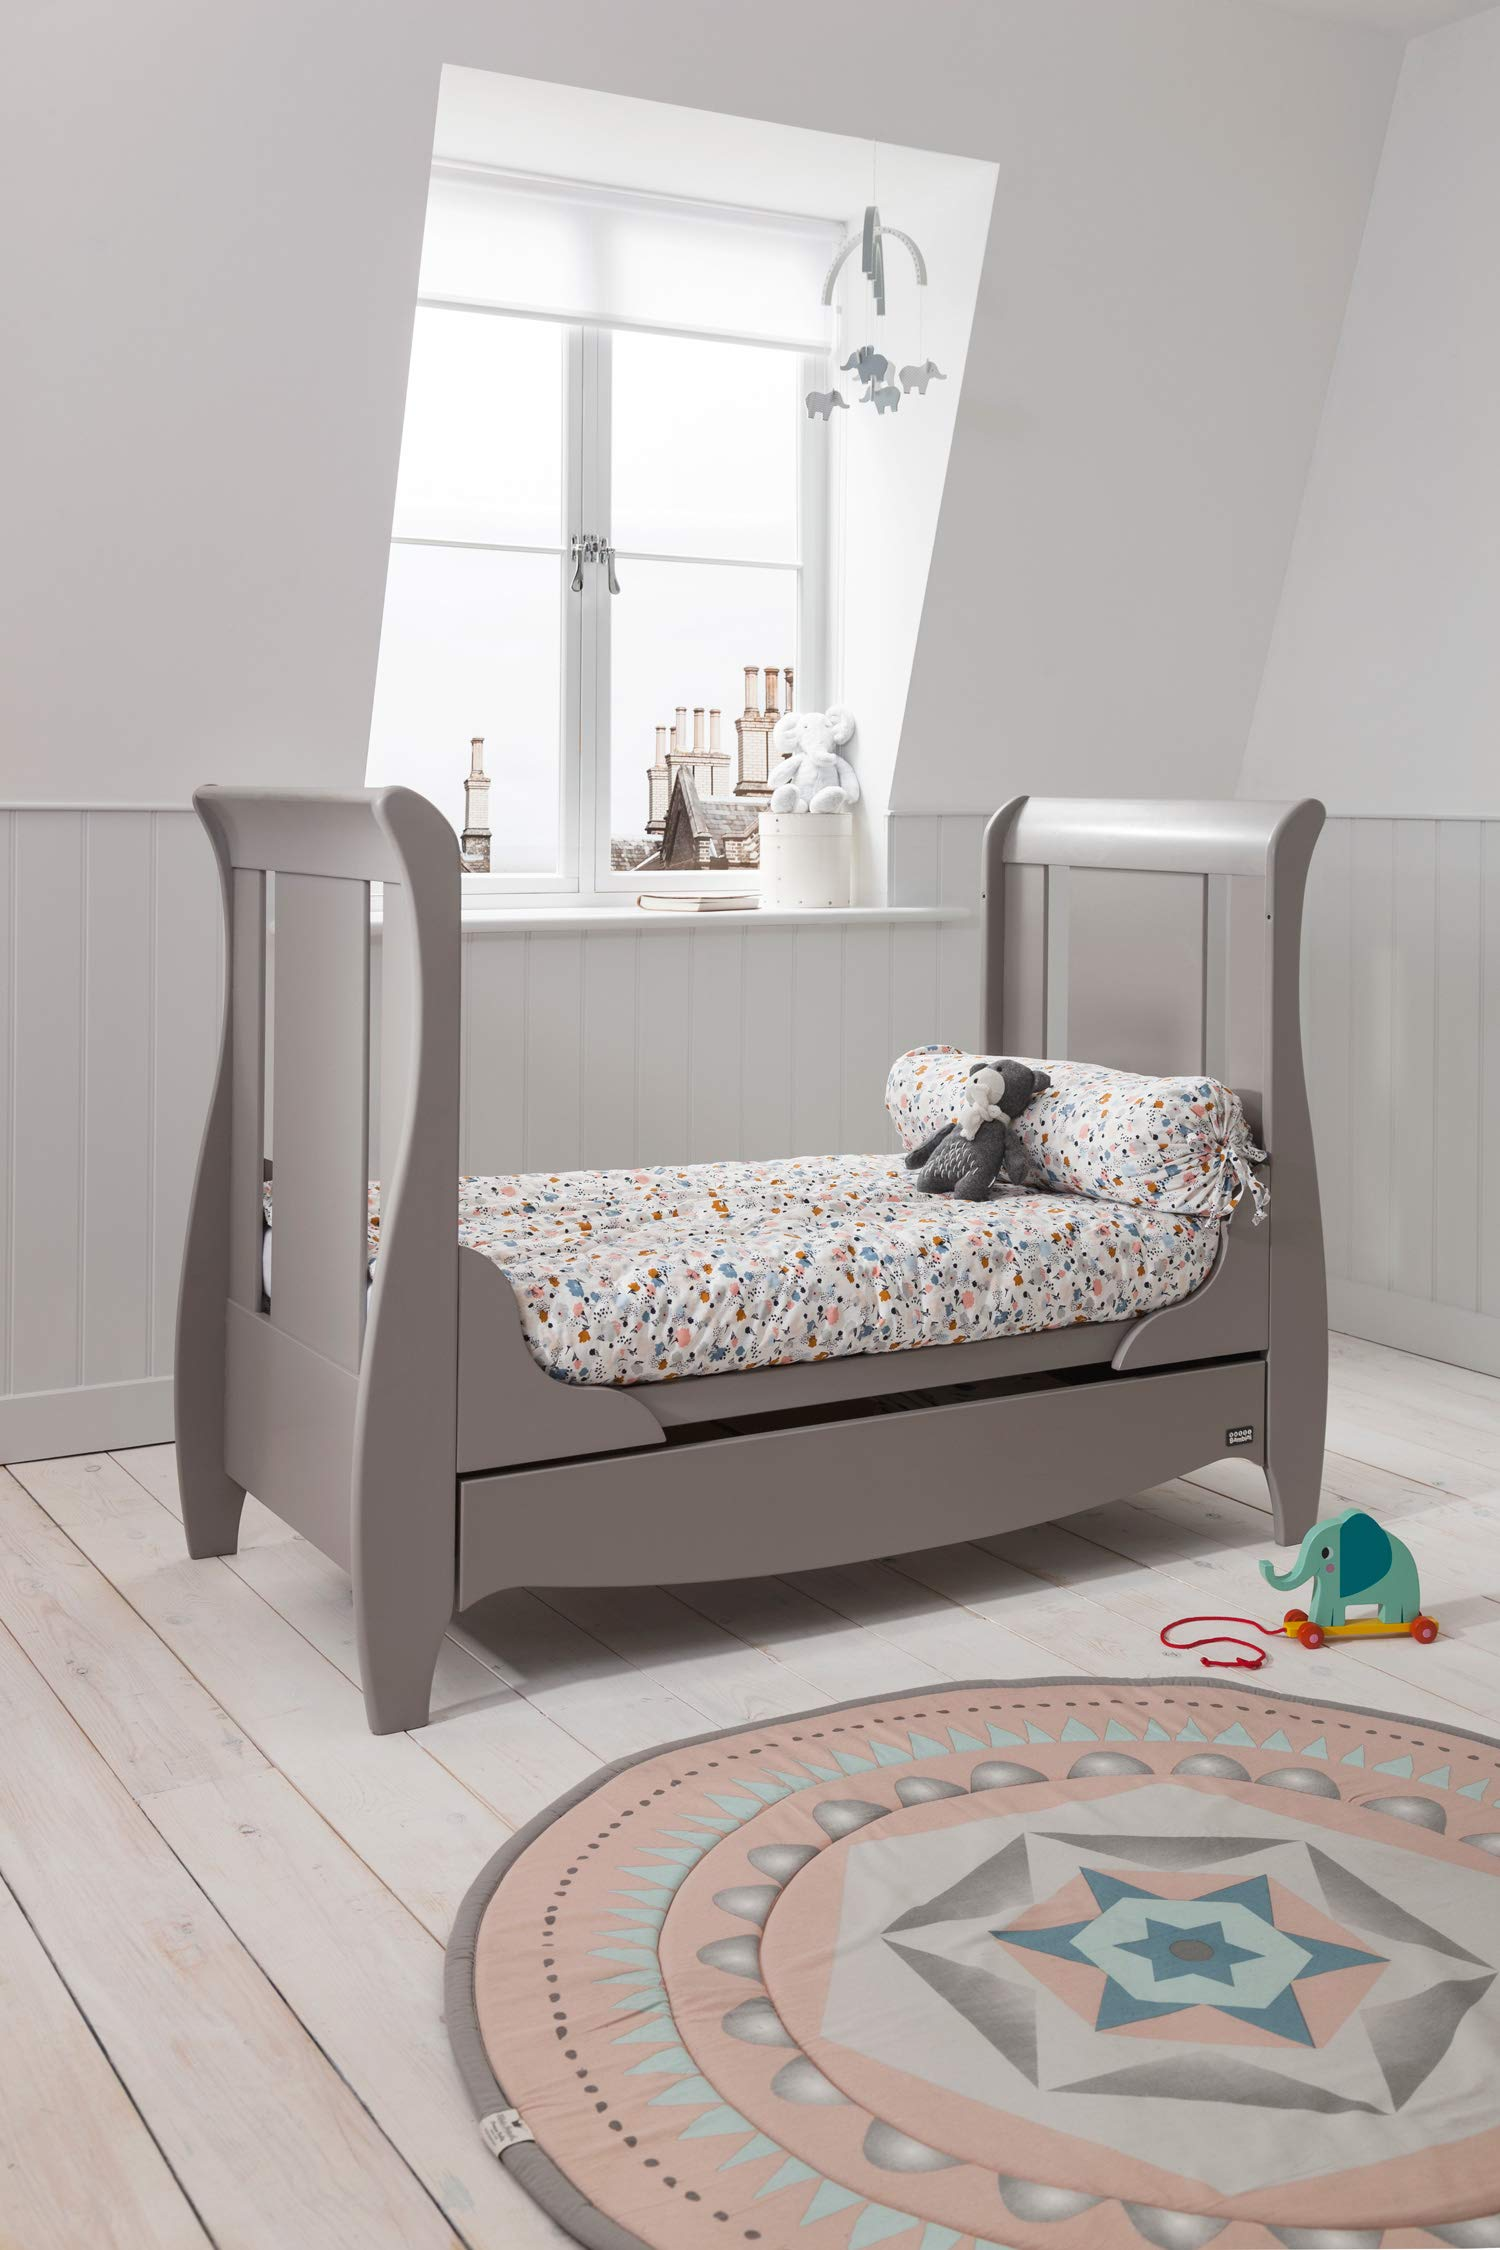 Tutti Bambini Roma Wooden Sleigh Cot Bed with Space Saver Under Bed Drawer - 120 x 60cm 3 Adjustable Positions (Truffle Grey) Tutti Bambini BIRTH TO 4 YEARS - Can be used as a Cot Bed from birth and then converted into a sofa or junior bed suitable up to 4 years ADJUSTABLE BASE - Three position adjustable mattress base, allowing easy access to little ones UNDER BED DRAWER - Classic sleigh design with under-bed drawer for extra storage, available in White or Espresso finish 6